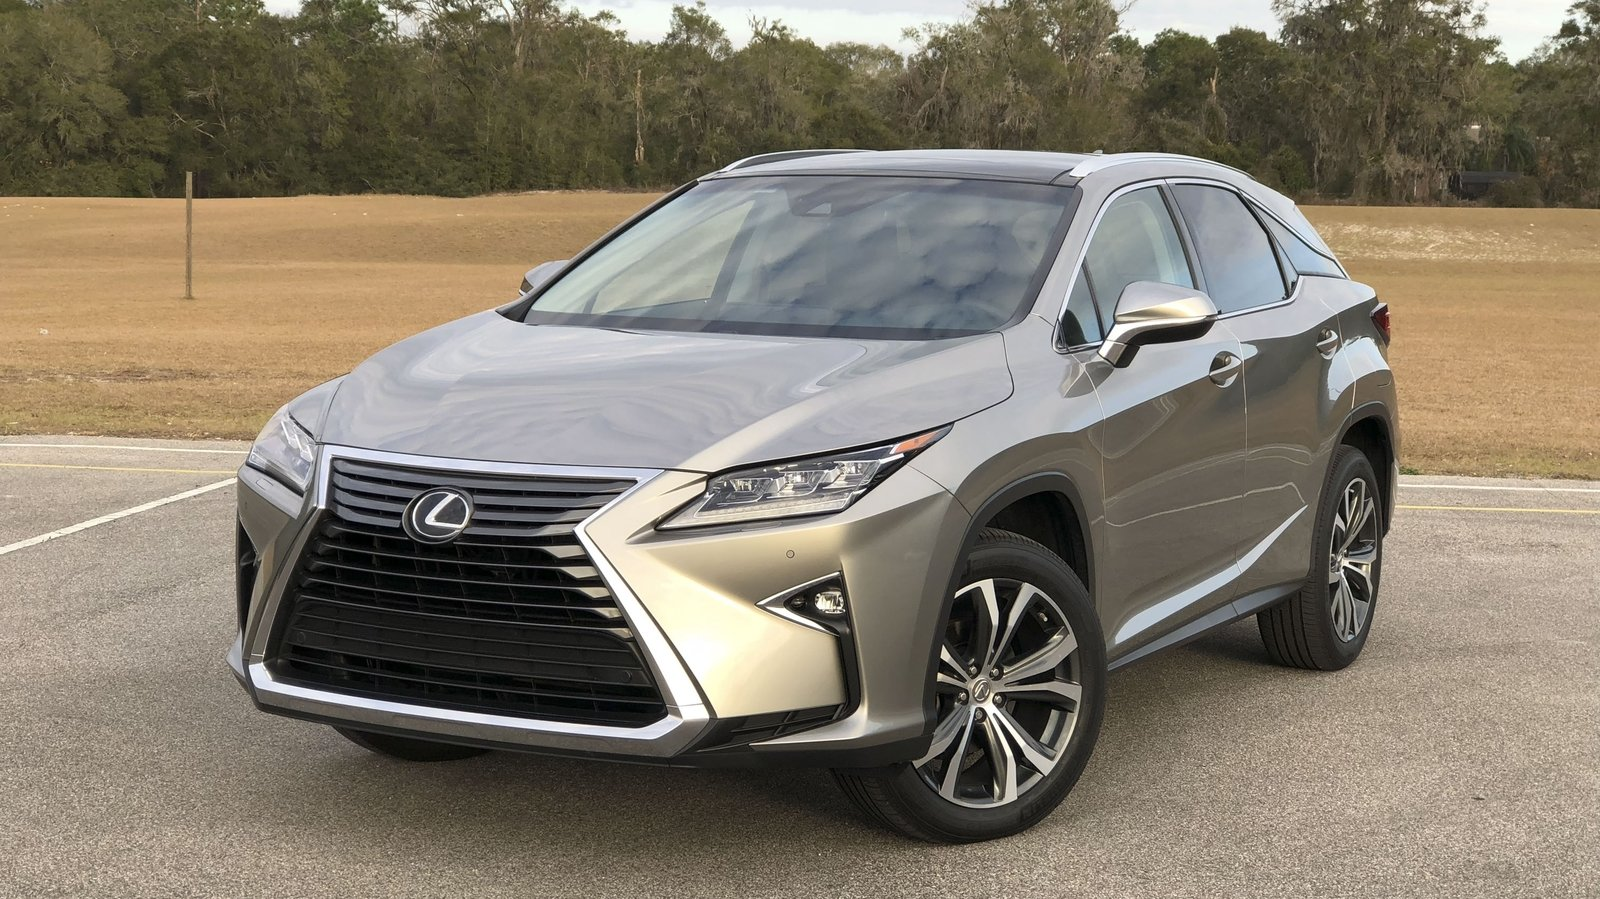 Mdx Cash Back >> Price Check: Lexus RX350 Vs The Competition | Top Speed